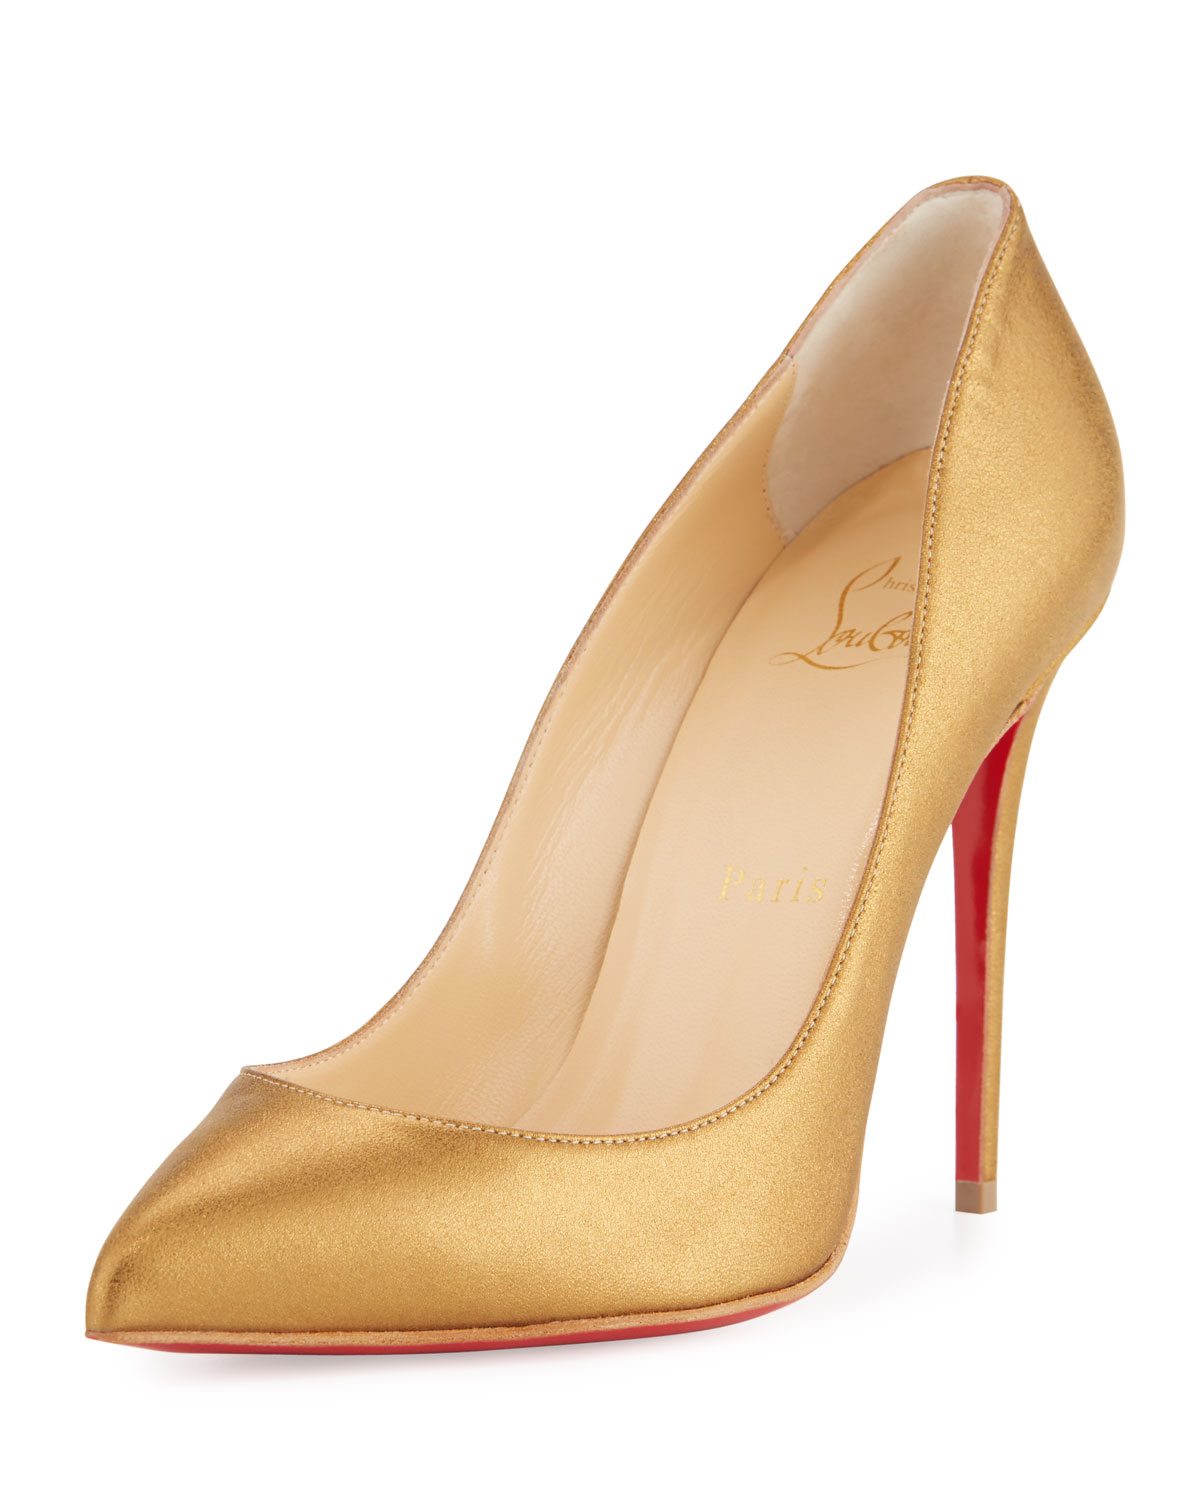 7ea2643336b Christian Louboutin Pigalle Follies Leather 100mm Red Sole Pump ...